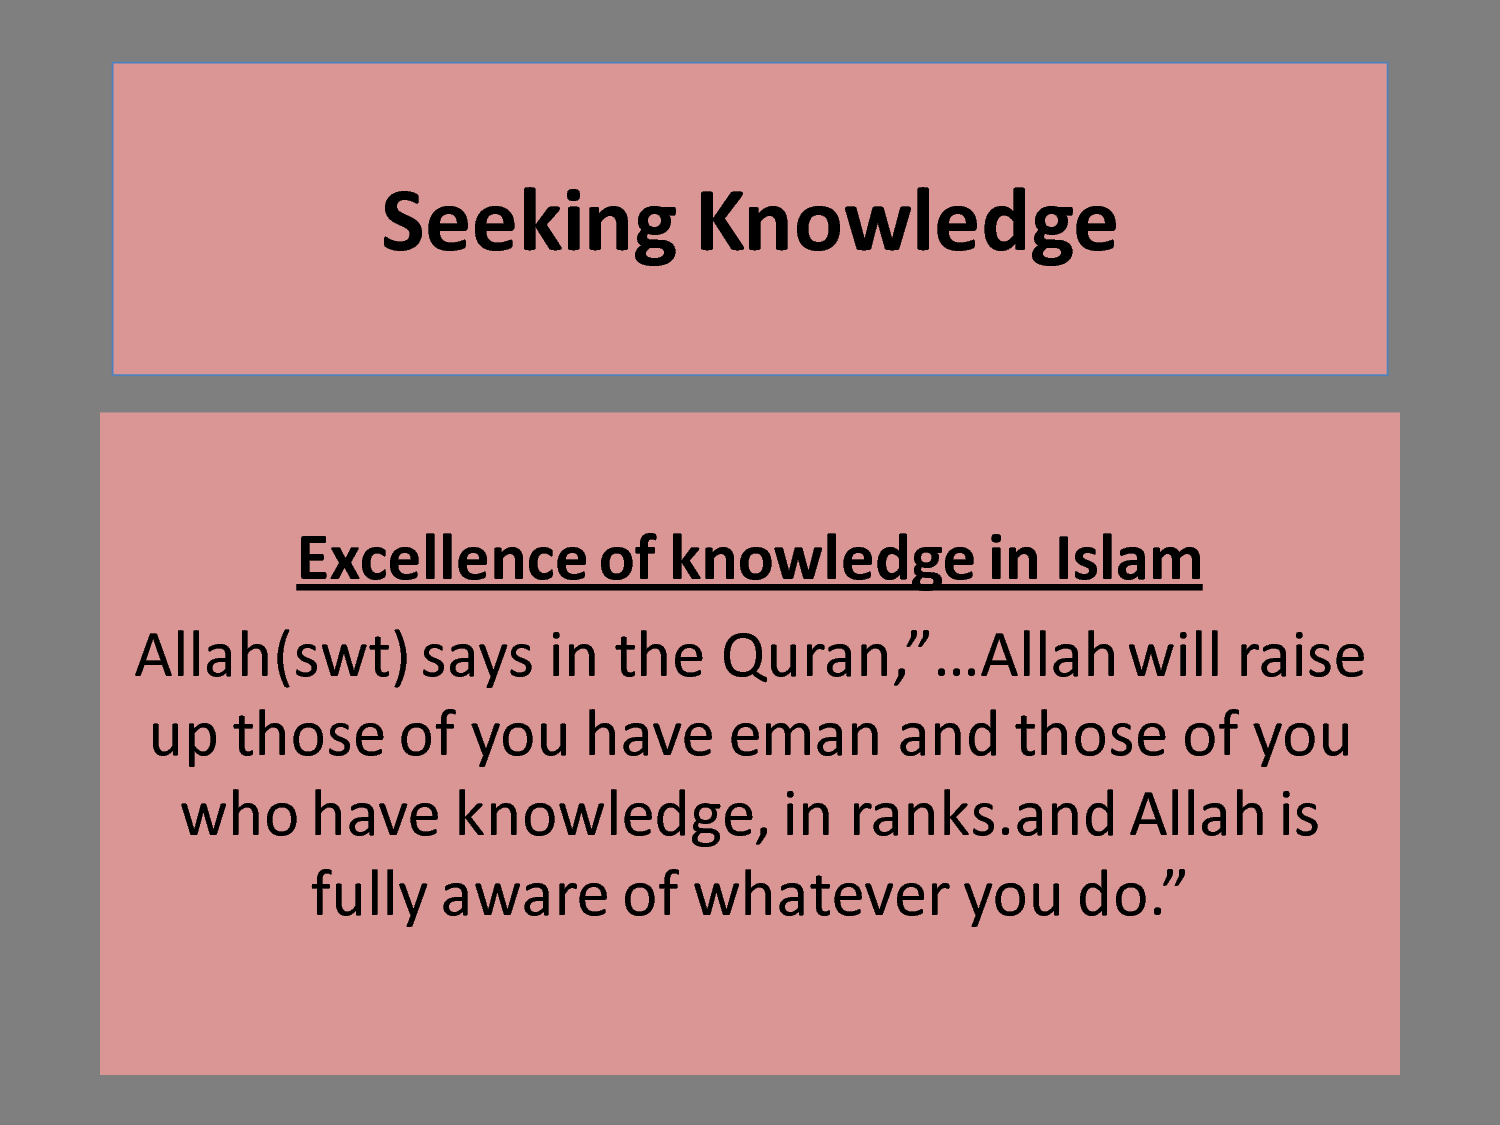 Quotes Education Islamic Quotes About Education  Articles About Islam